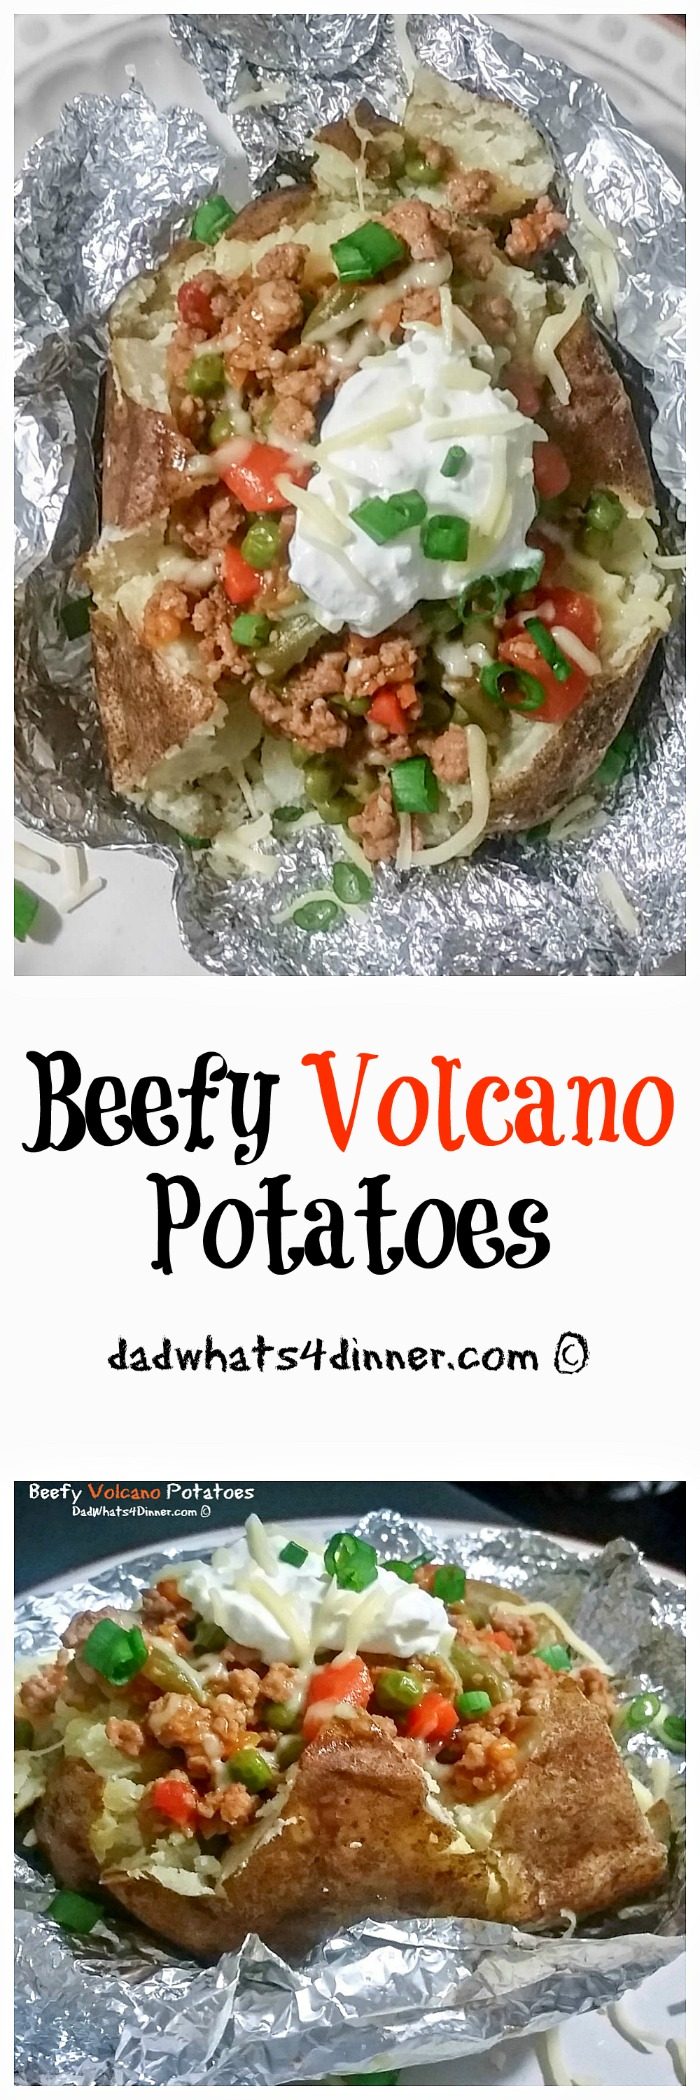 Beefy Volcano Potatoes is the perfect easy weeknight meal even your kids can make. Cooking with kids recipes